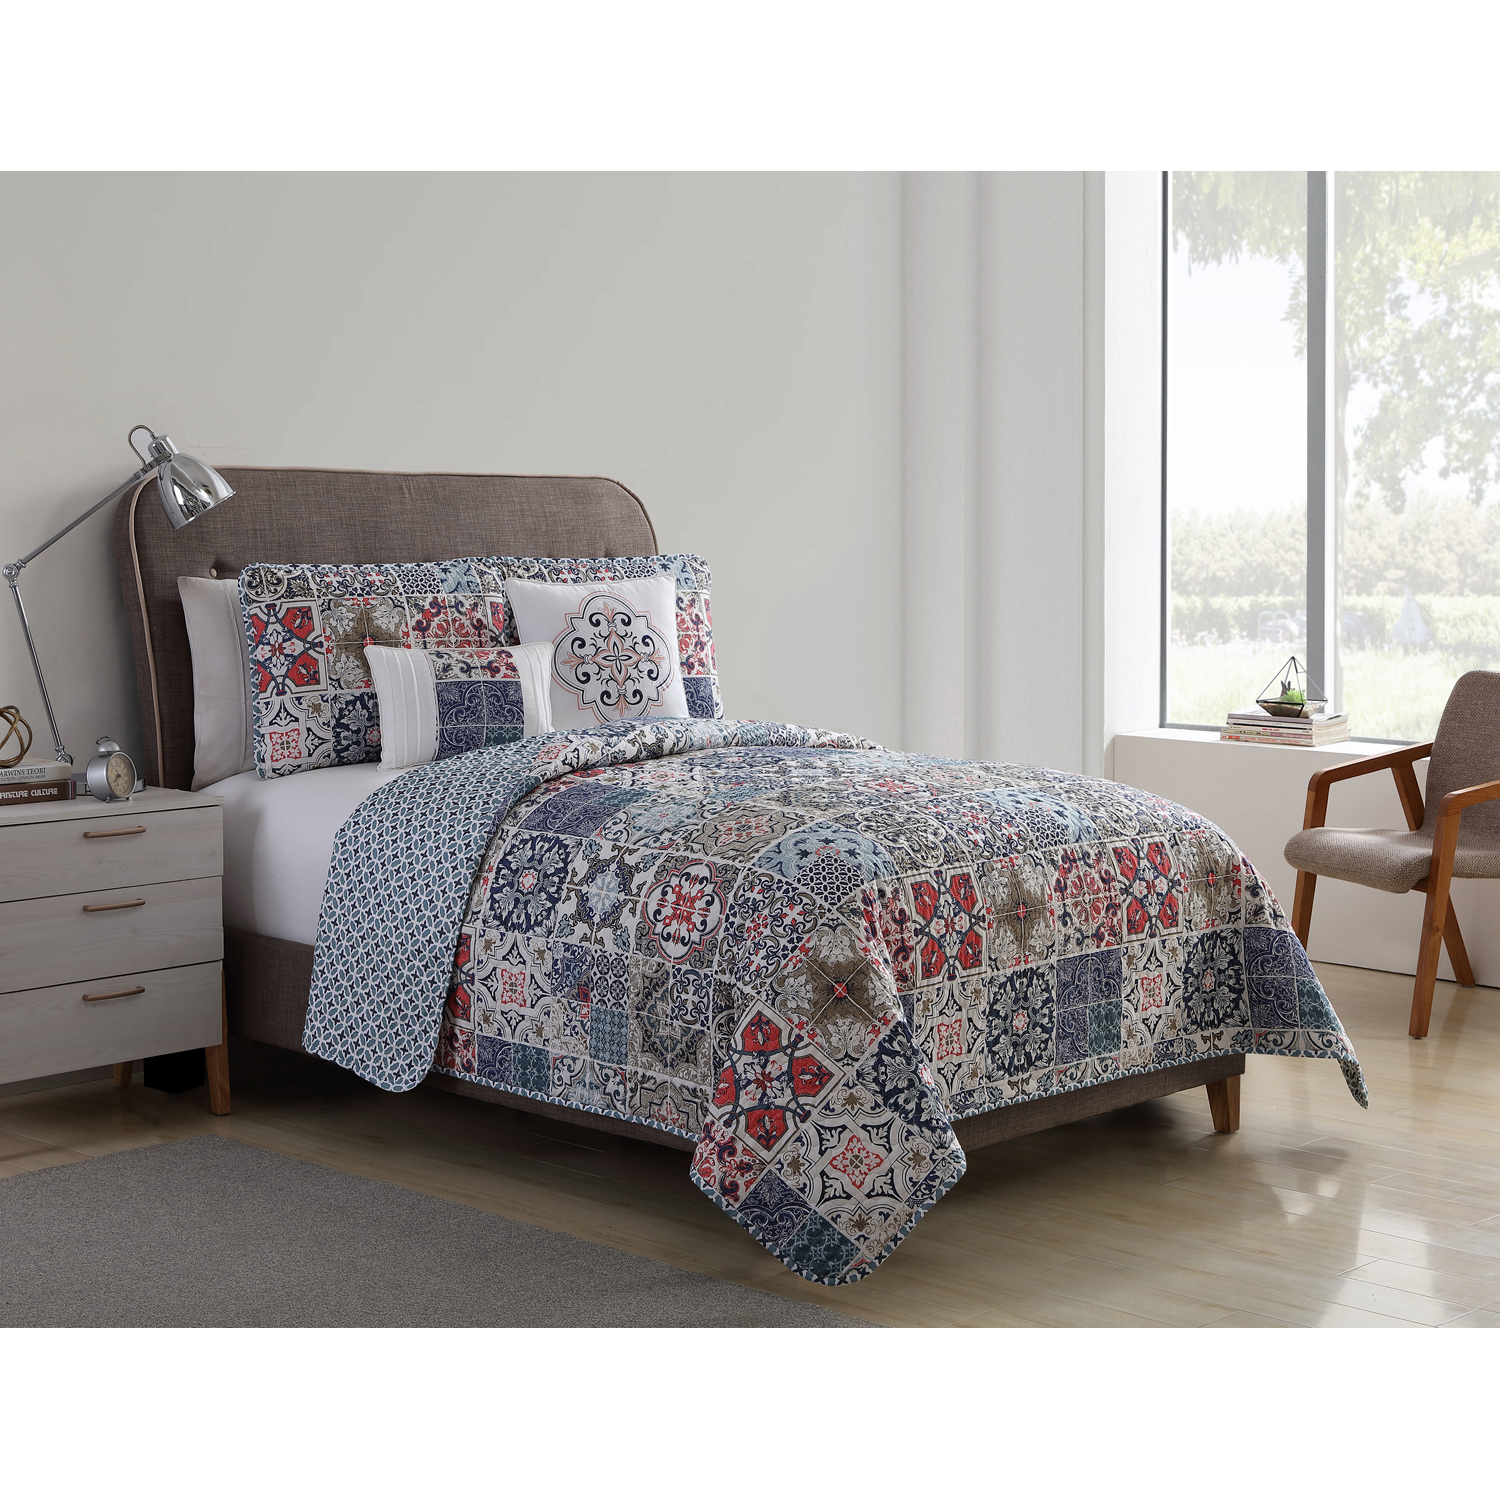 VCNY Home Multi-Color Azure Tile Medallion 4 5 Piece Quilt Bedding Set, Shams and... by VCNY Home